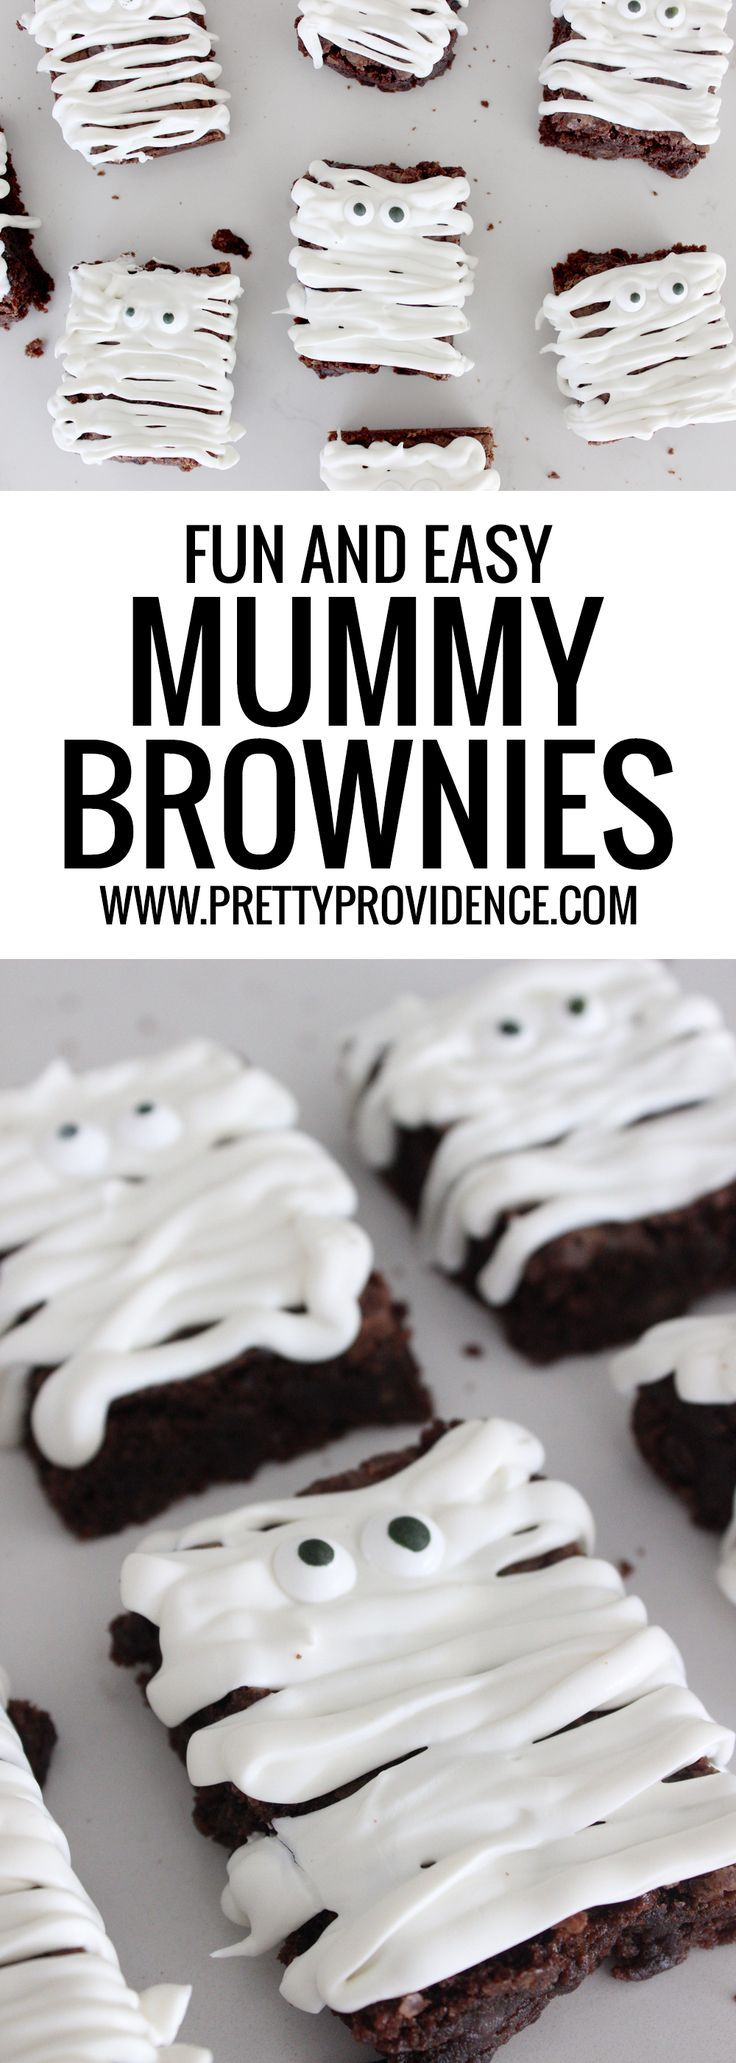 Mummy Halloween Brownies -